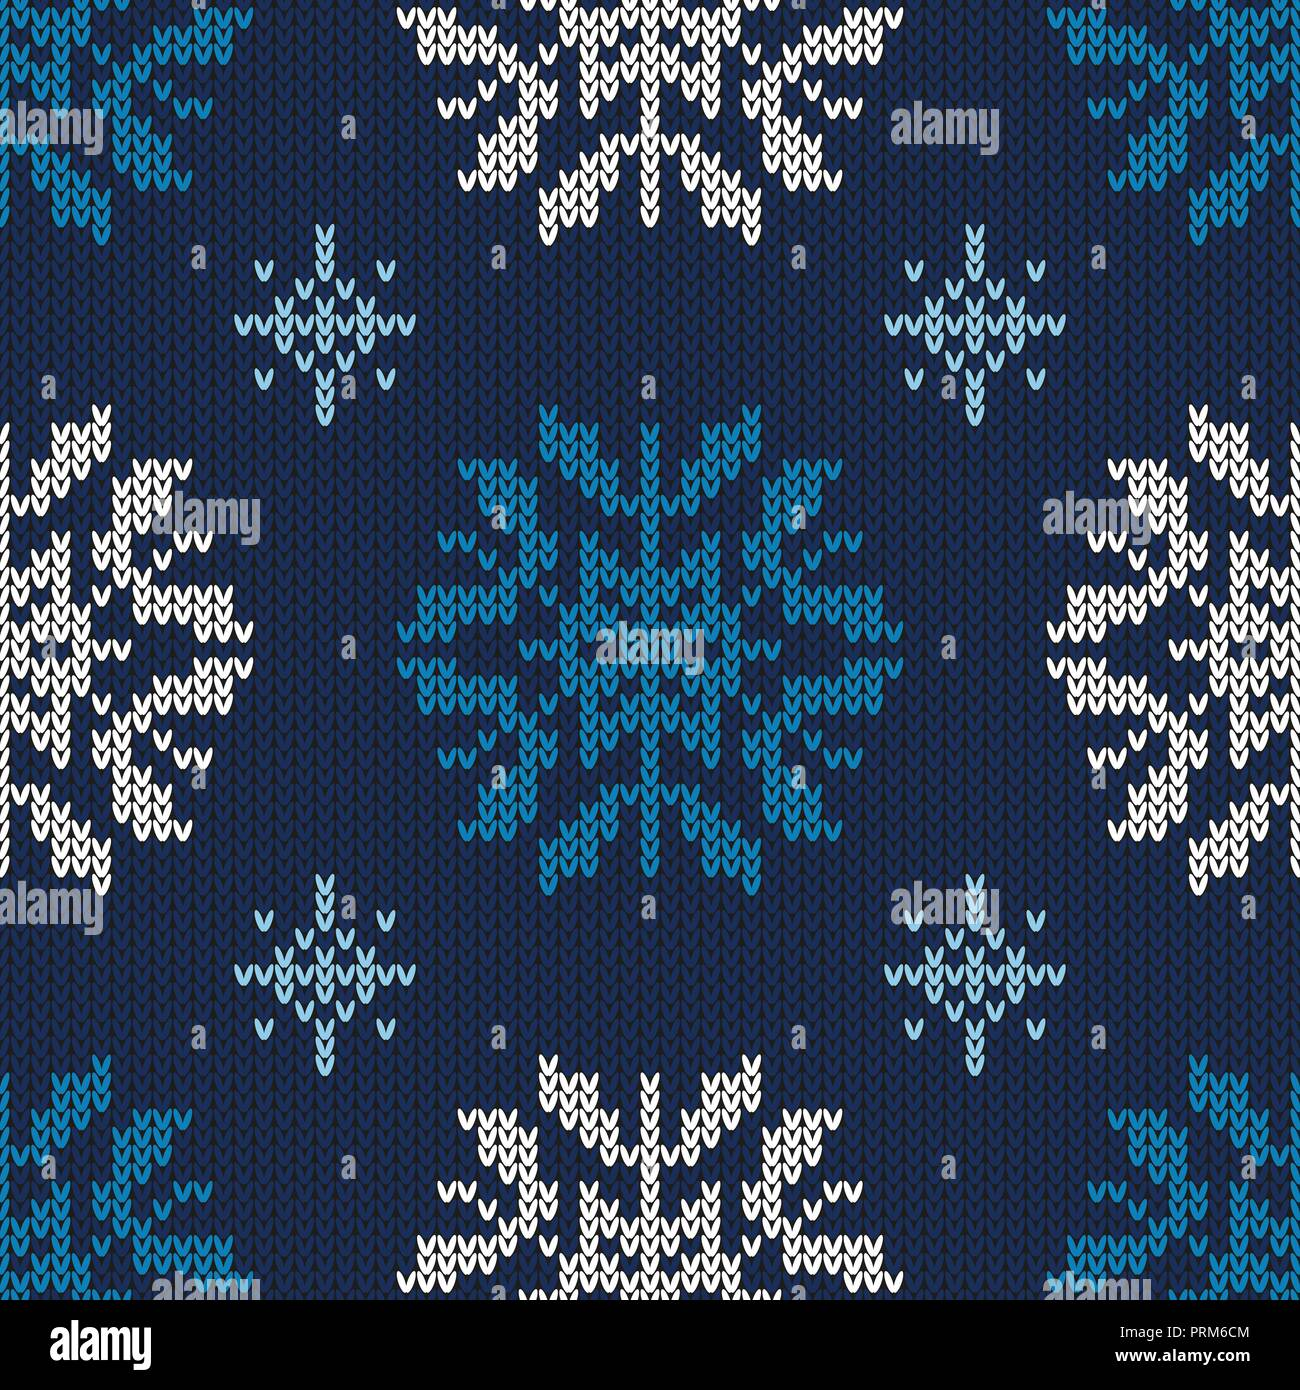 Christmas abstract knitted pattern. Christmas seamless pattern. Design for sweater, scarf, comforter or clothes texture. Vector illustration. - Stock Vector